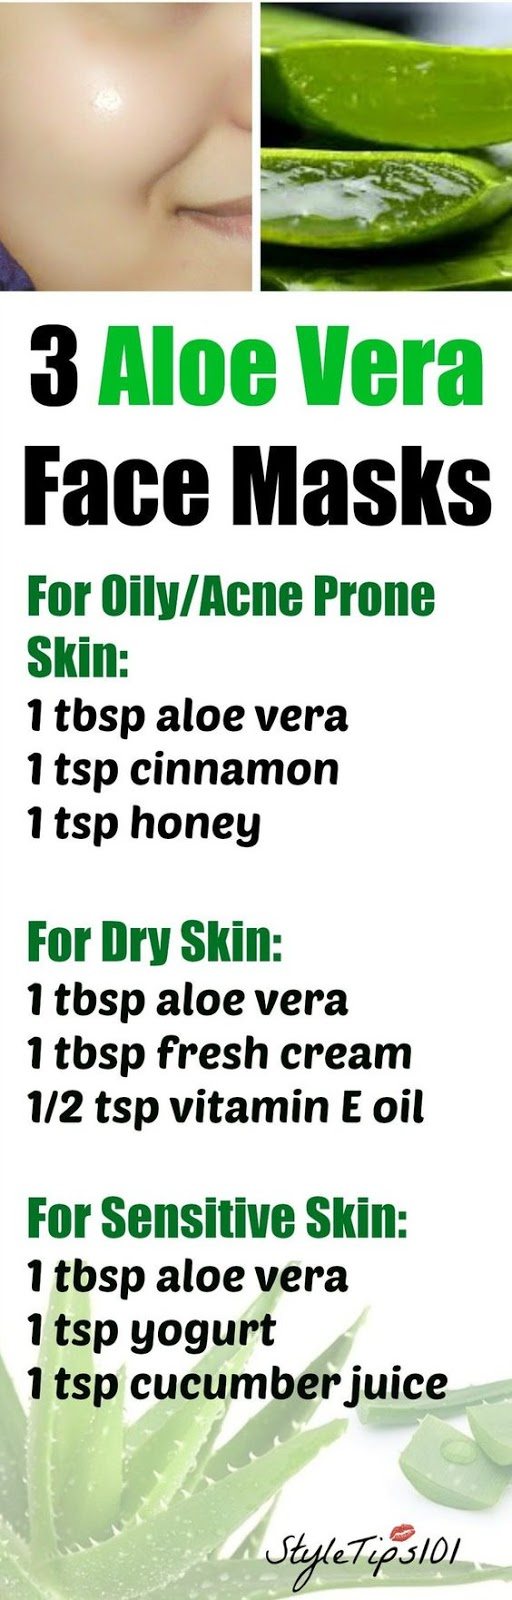 3 ALOE VERA FACE MASKS FOR EVERY SKIN TYPE